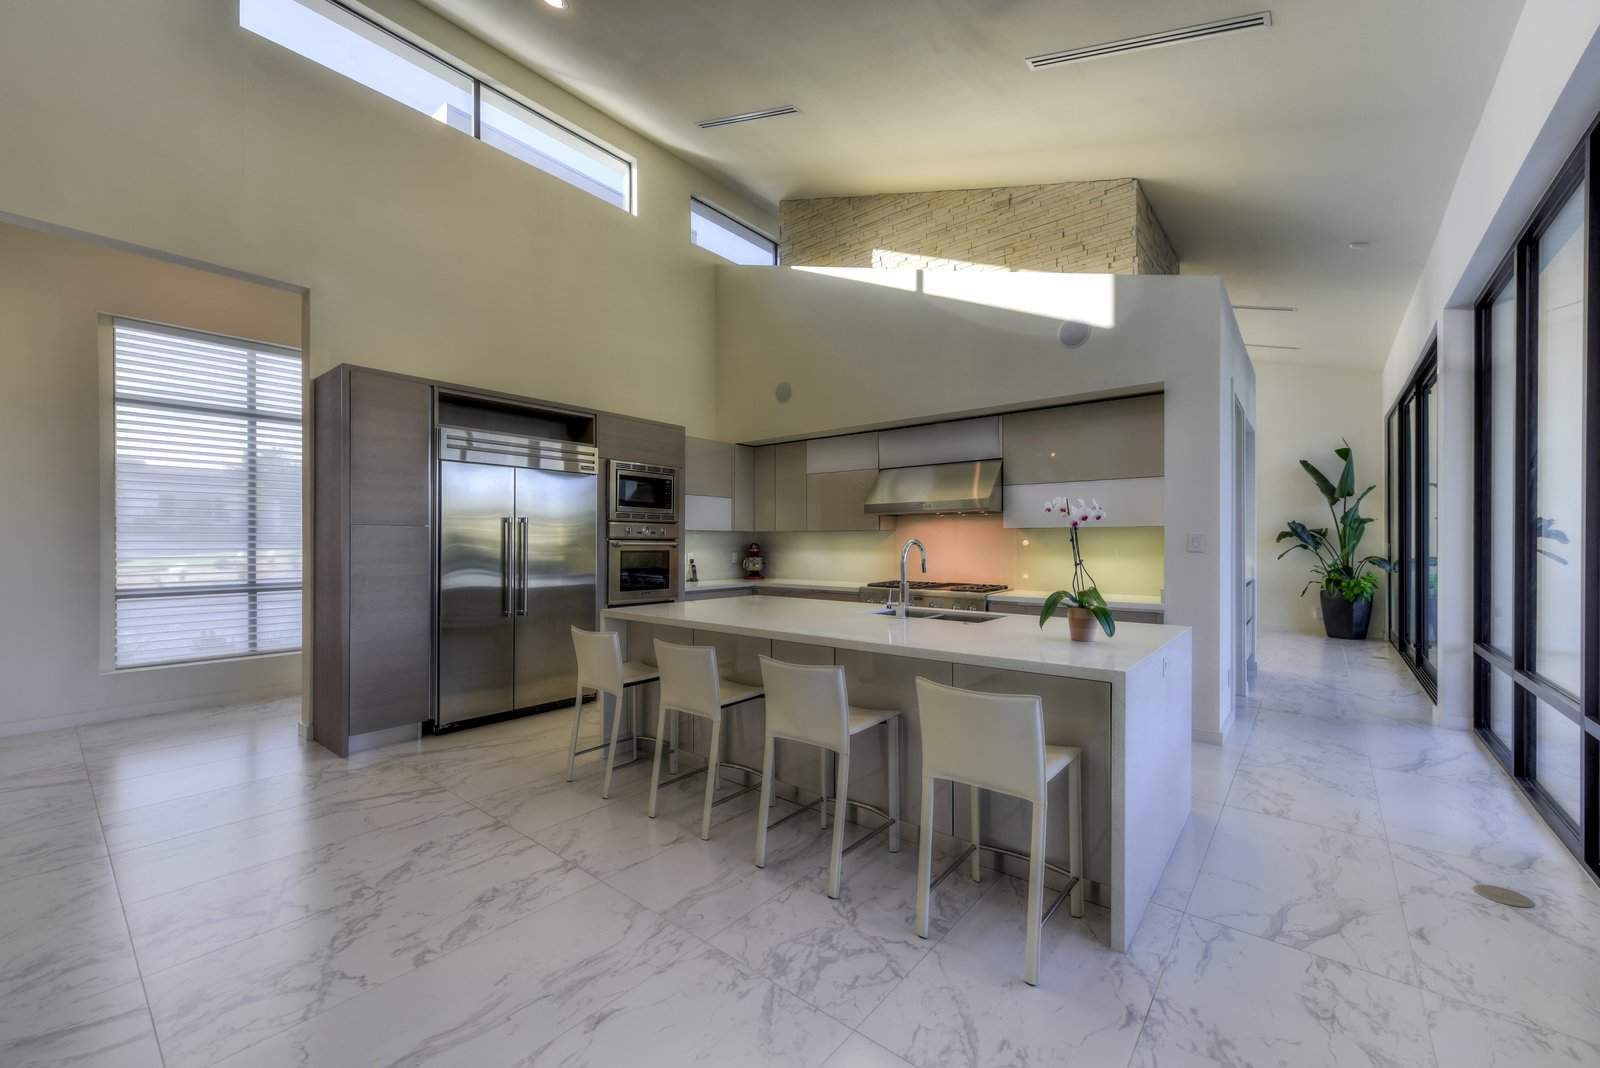 KITCHEN  ORVANANOS HOUSE by OSCAR E FLORES DESIGN STUDIO